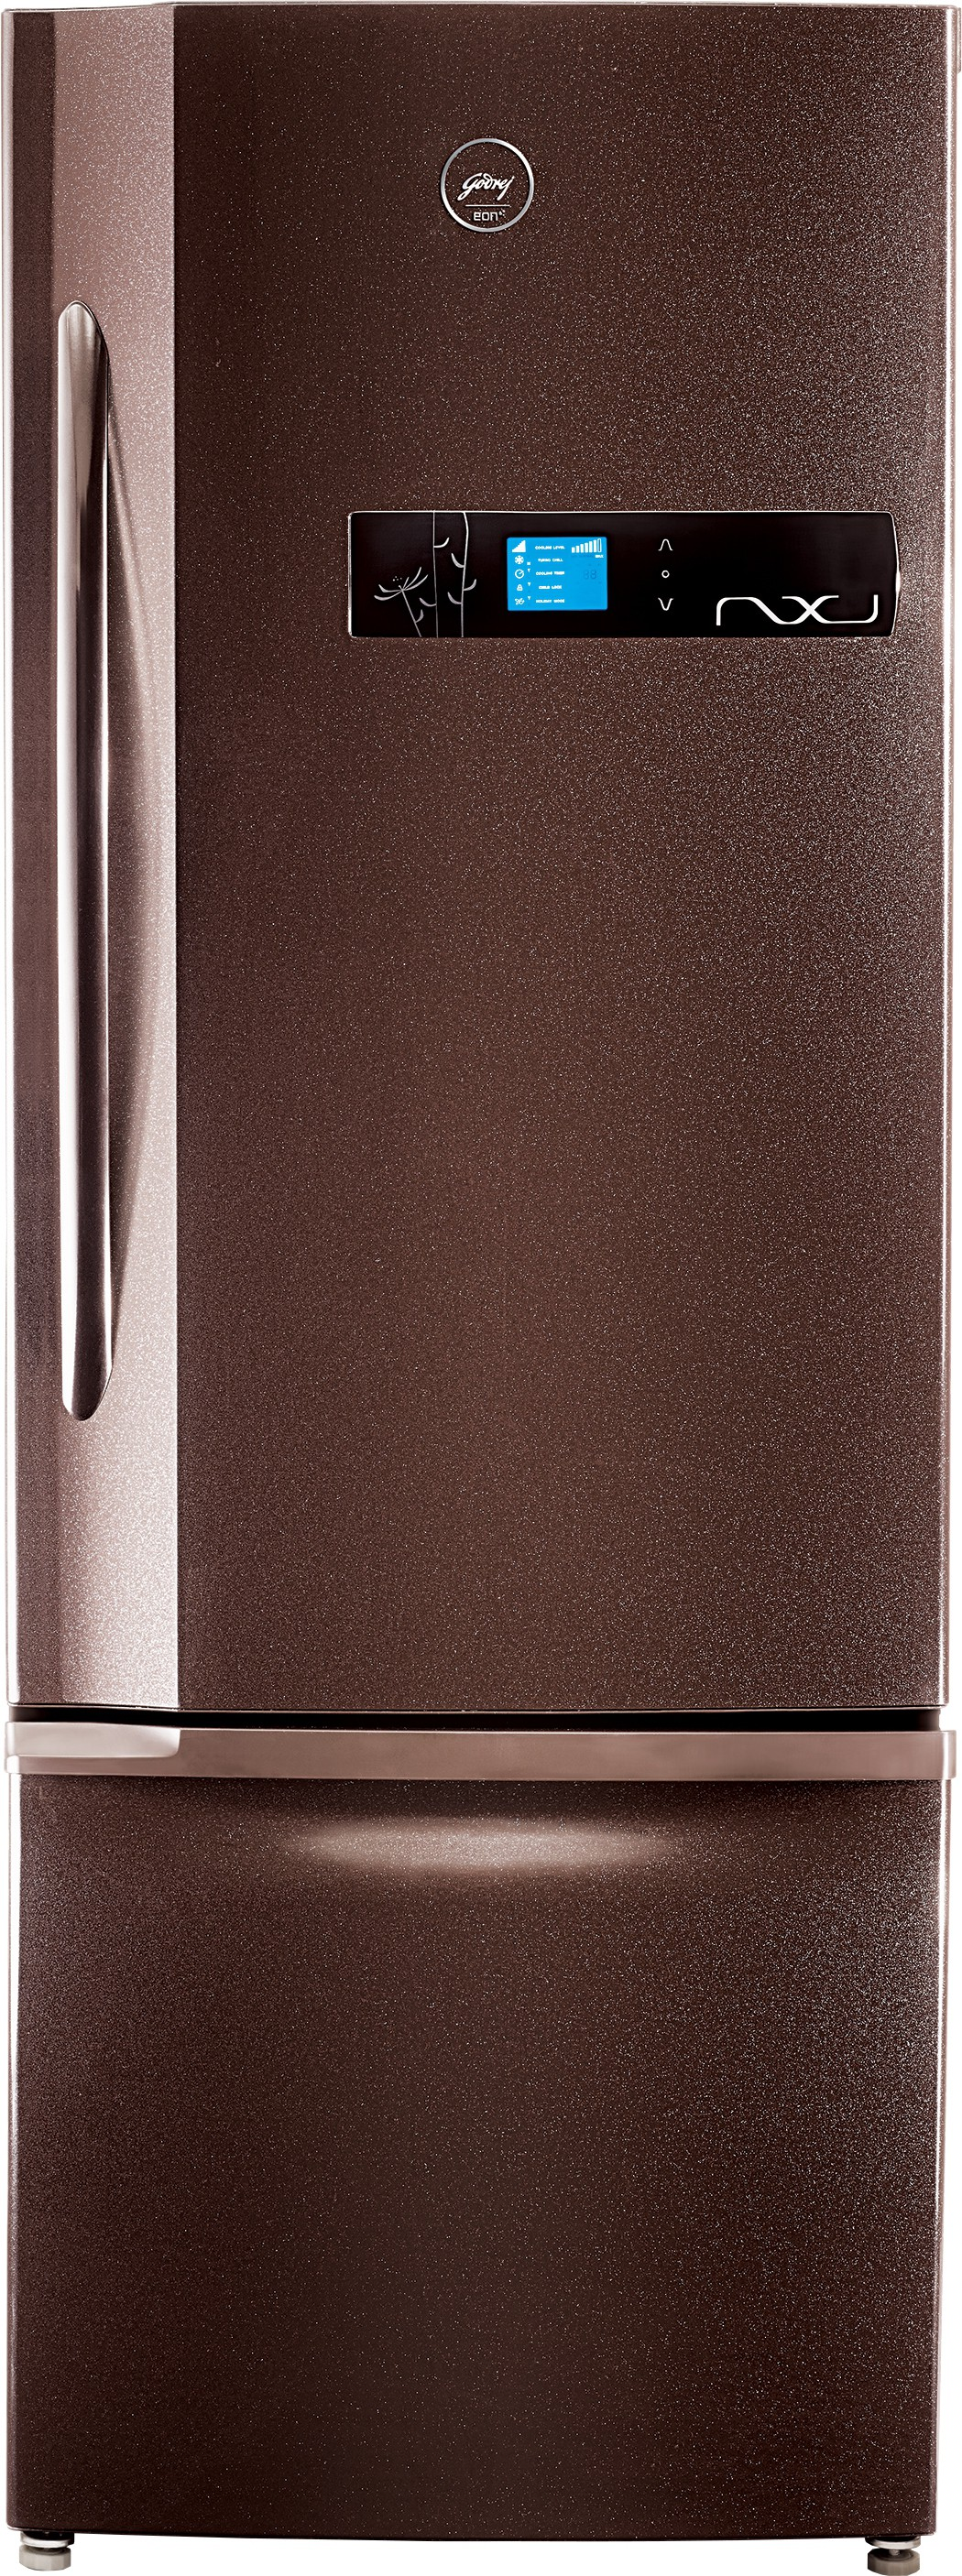 View Godrej 380 L Frost Free Double Door Refrigerator(RB EON NXW 380 SD, Cosmos, 2016)  Price Online